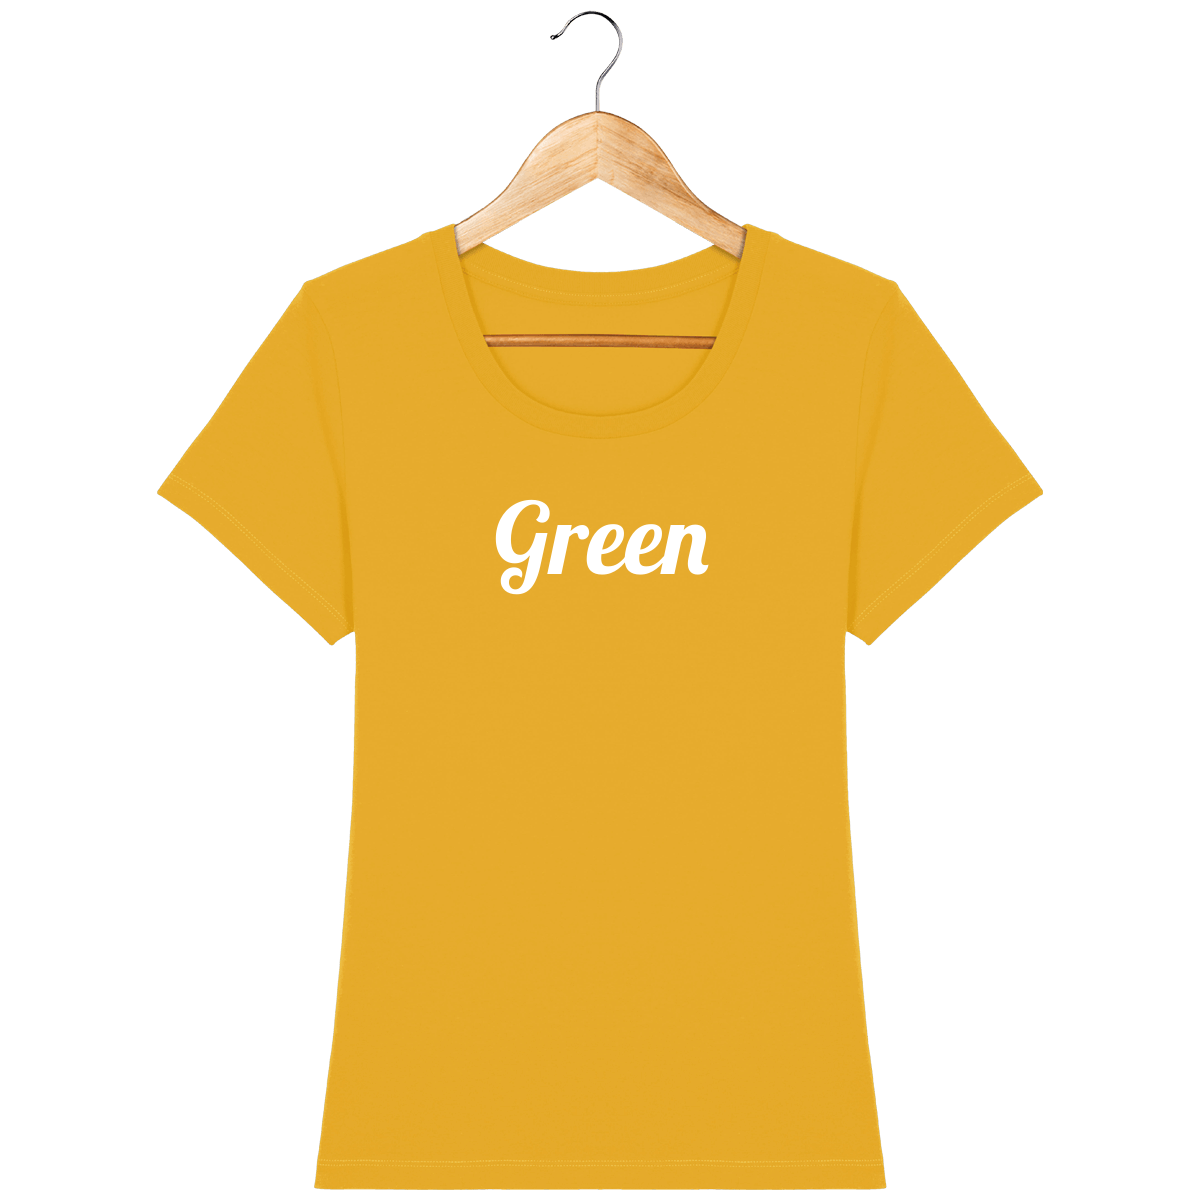 t-shirt-bio-brode-green-khaki-white_spectra-yellow_face